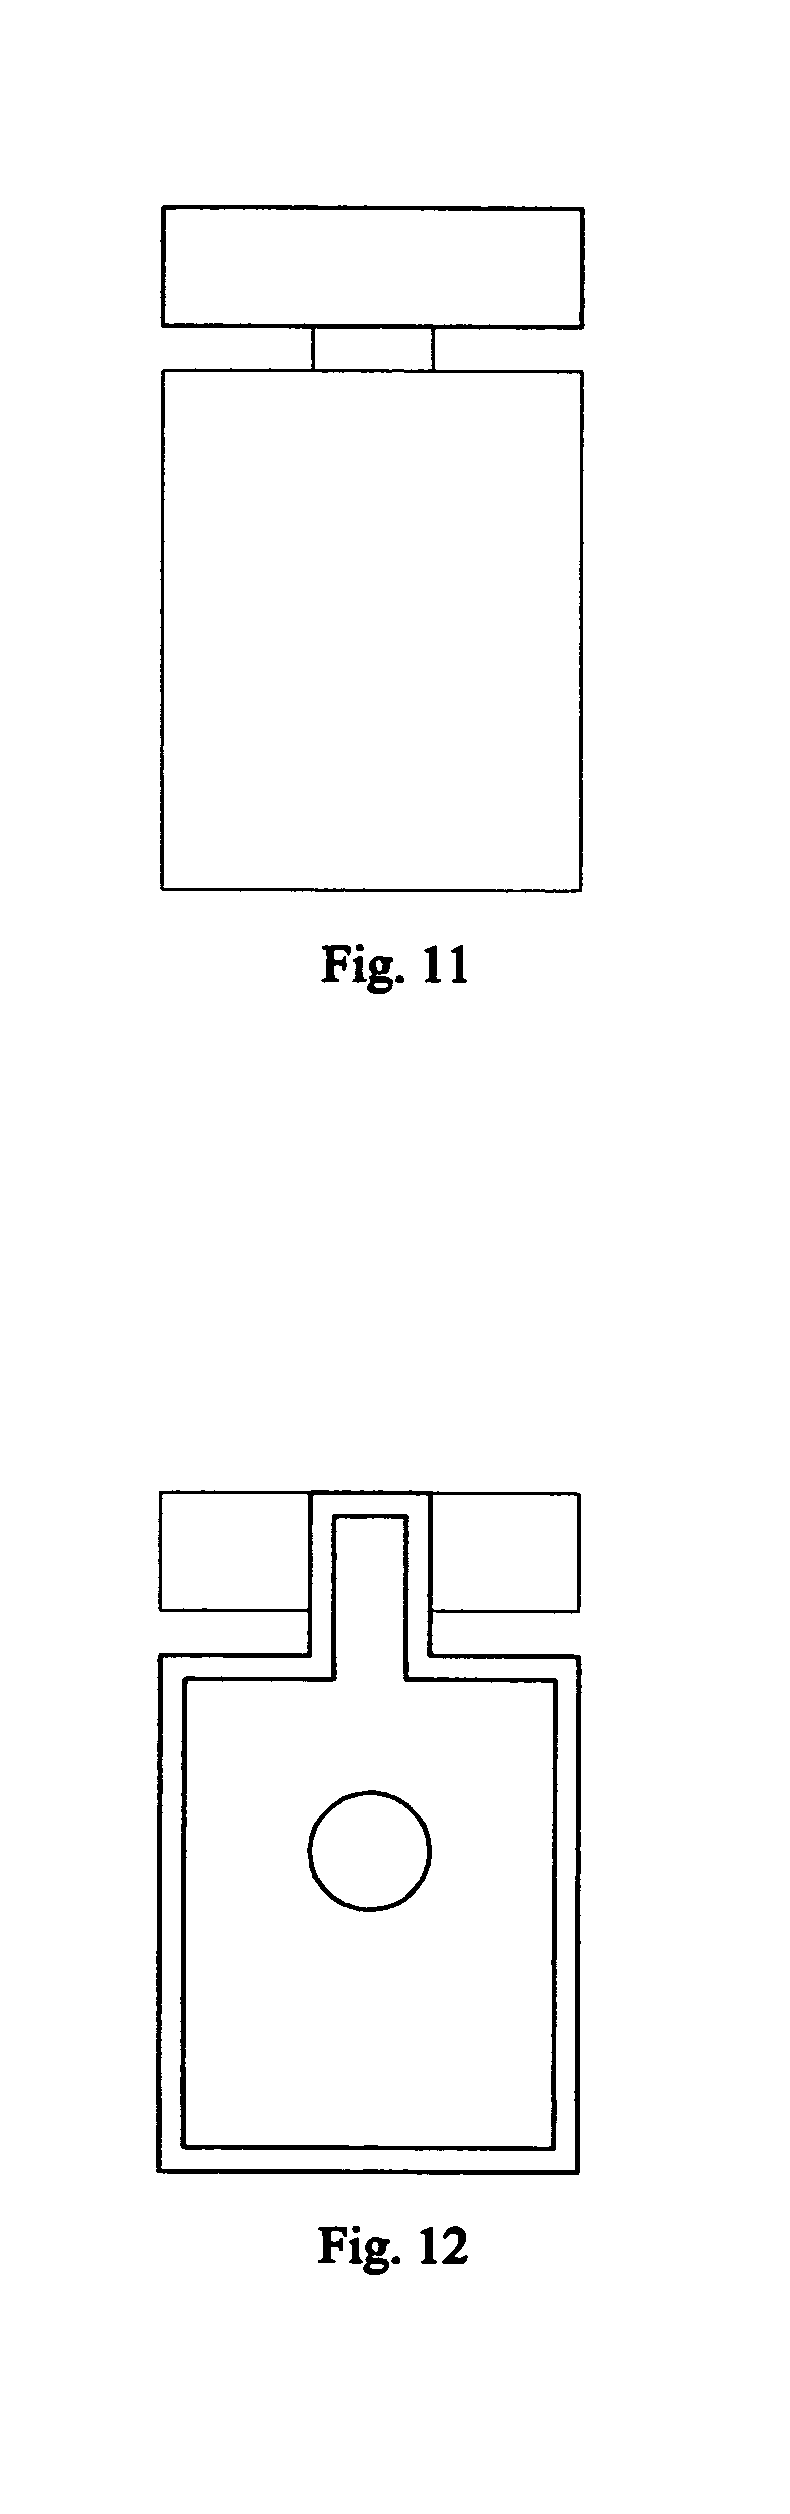 Front Elevation Of A Prism : Patent usd rectangular prism shaped toilet and